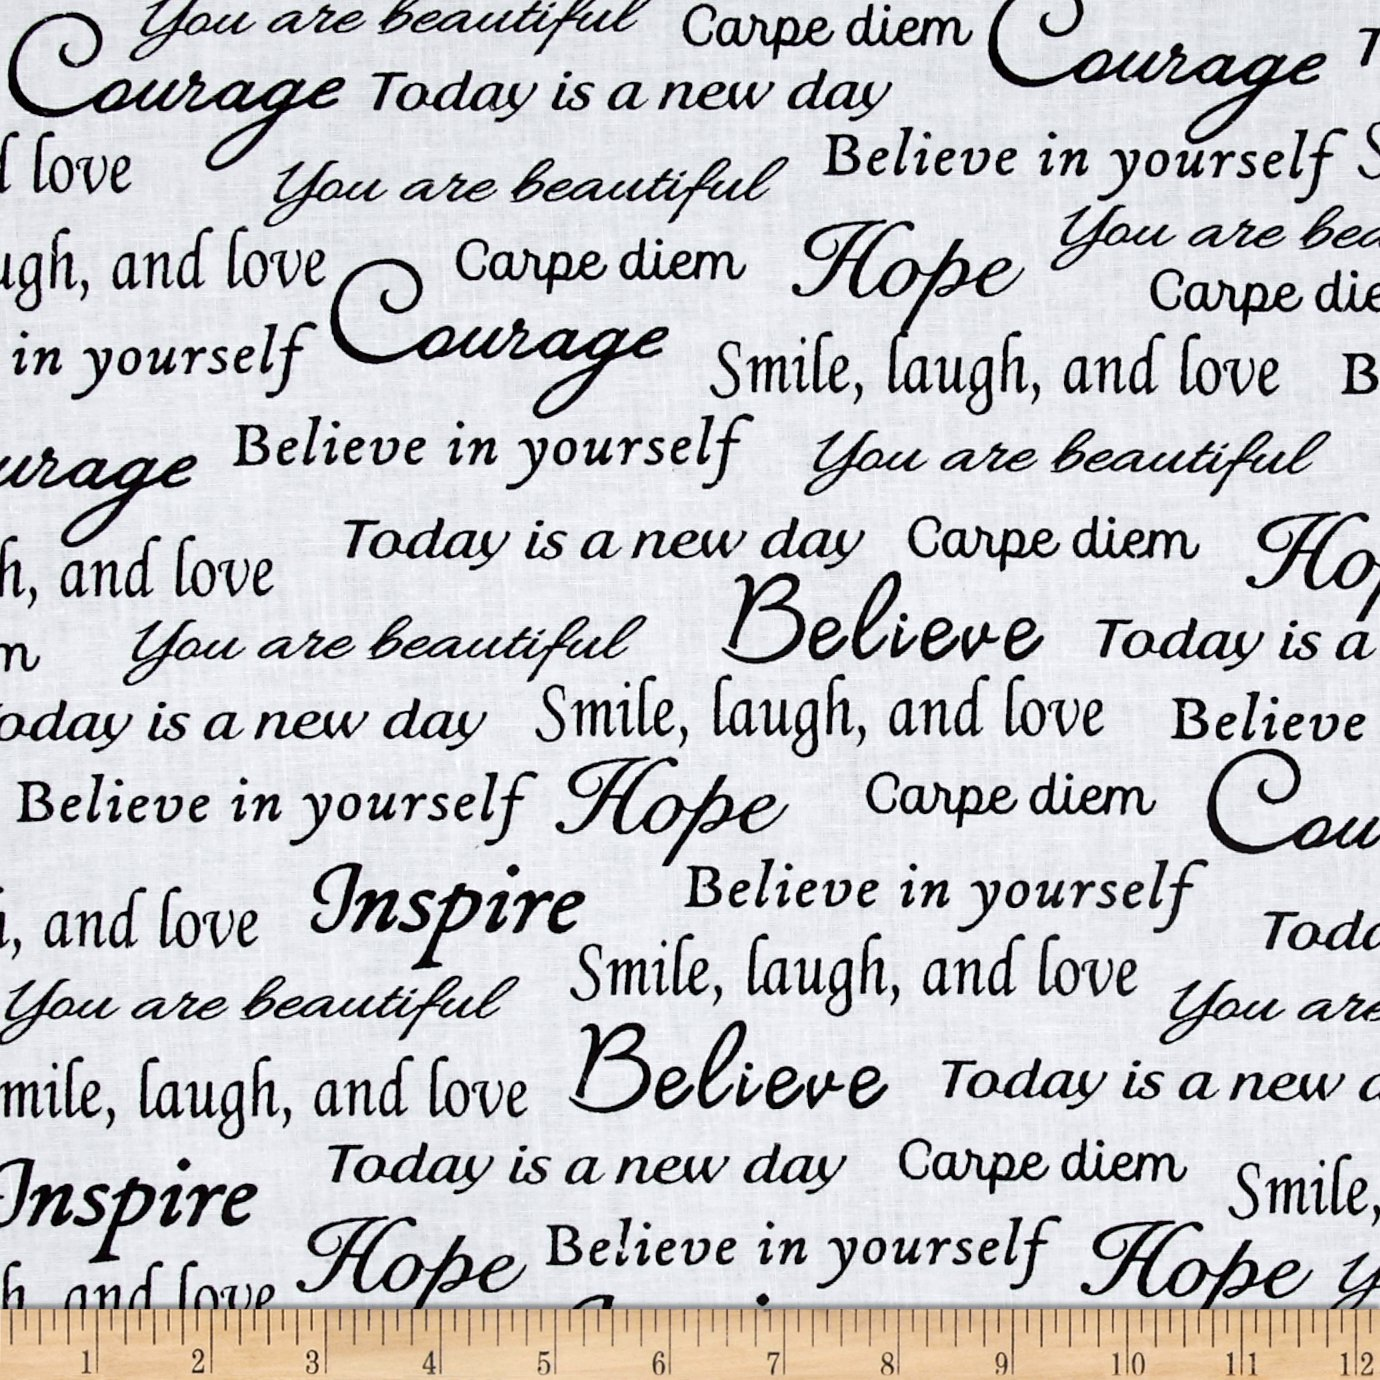 Windham Fabrics Sew Full 108in Wide Hope Words Black White Fabric by The Yard by Windham Fabrics (Image #1)